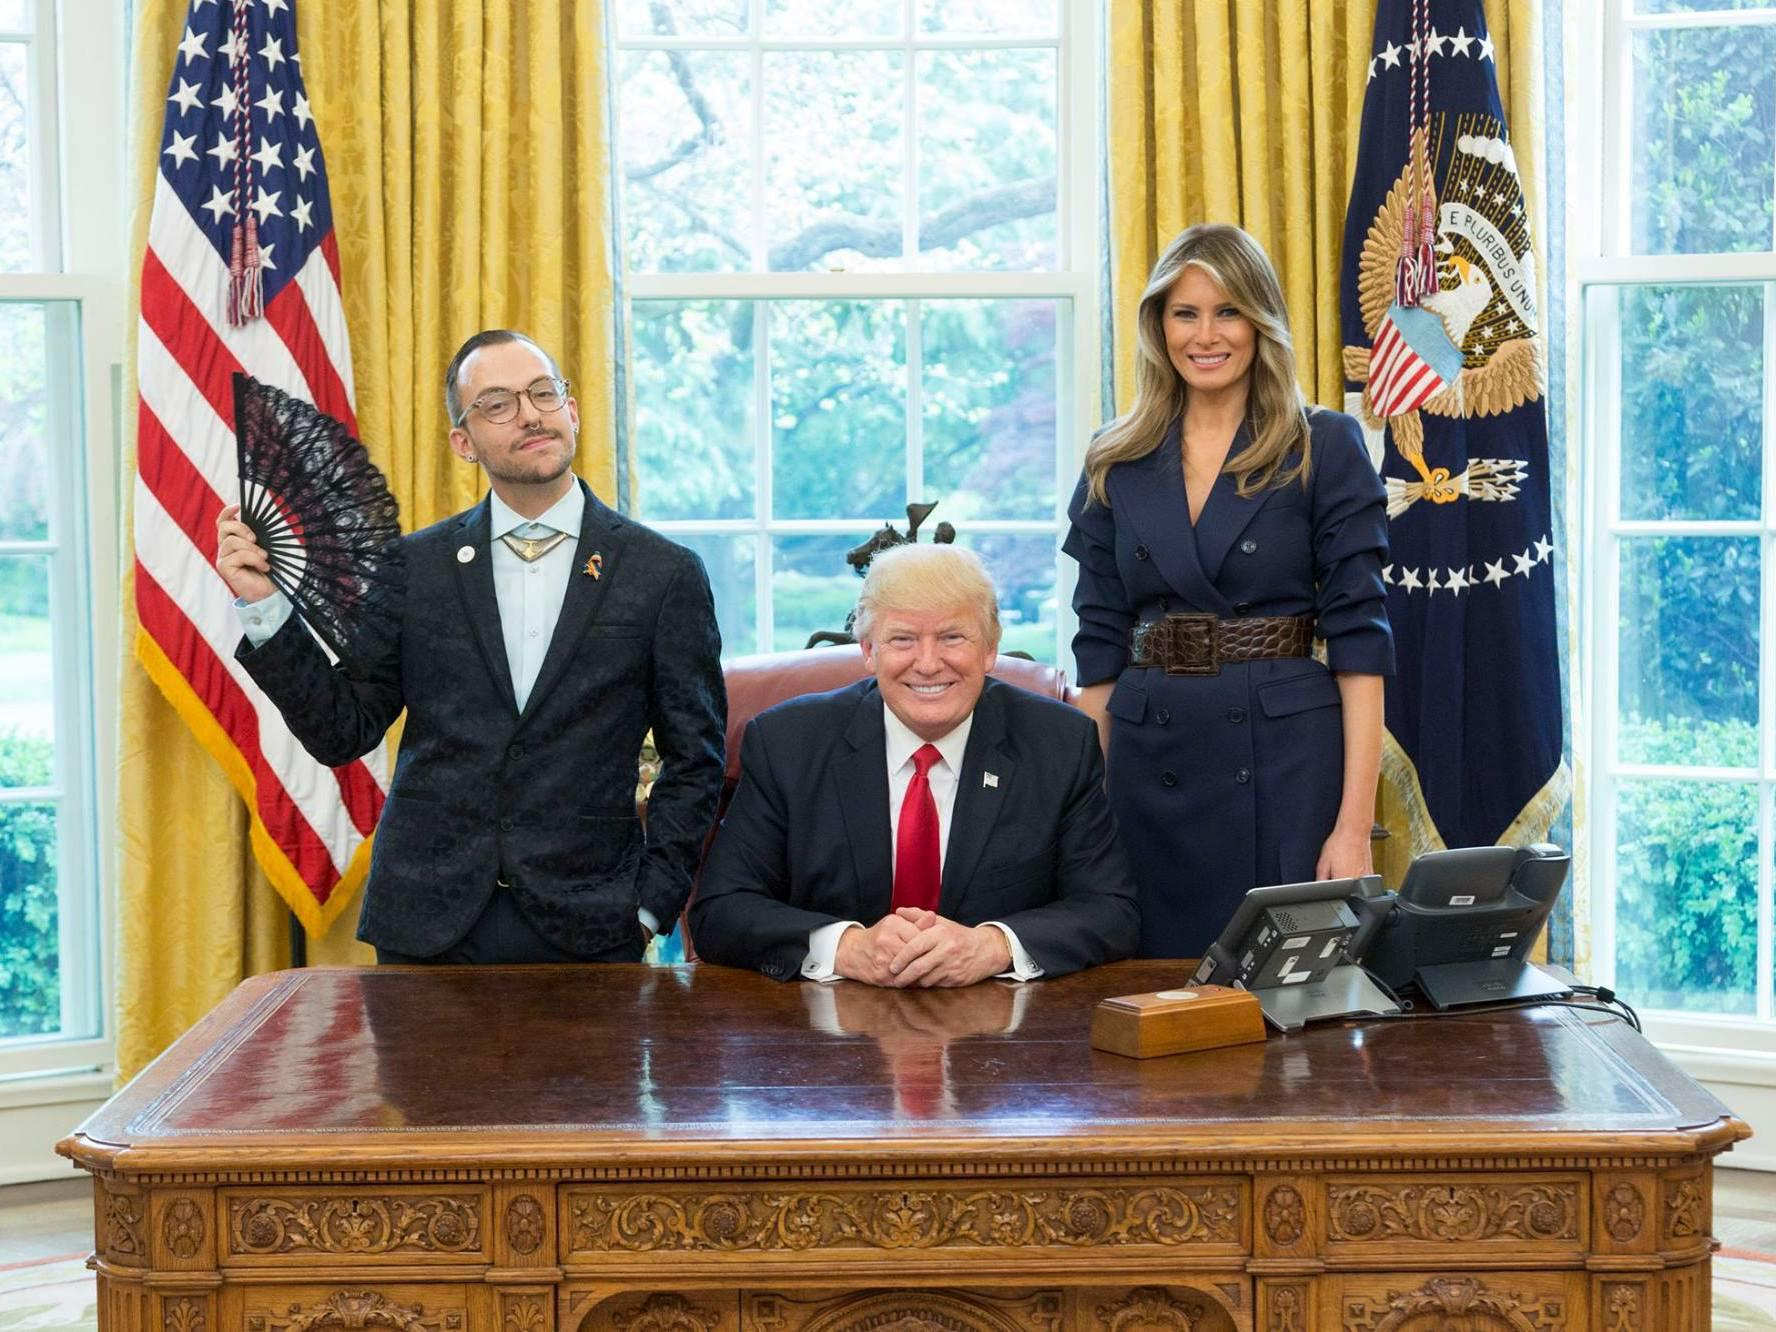 Teacher's photo showing LGBT pride next to Trump goes viral